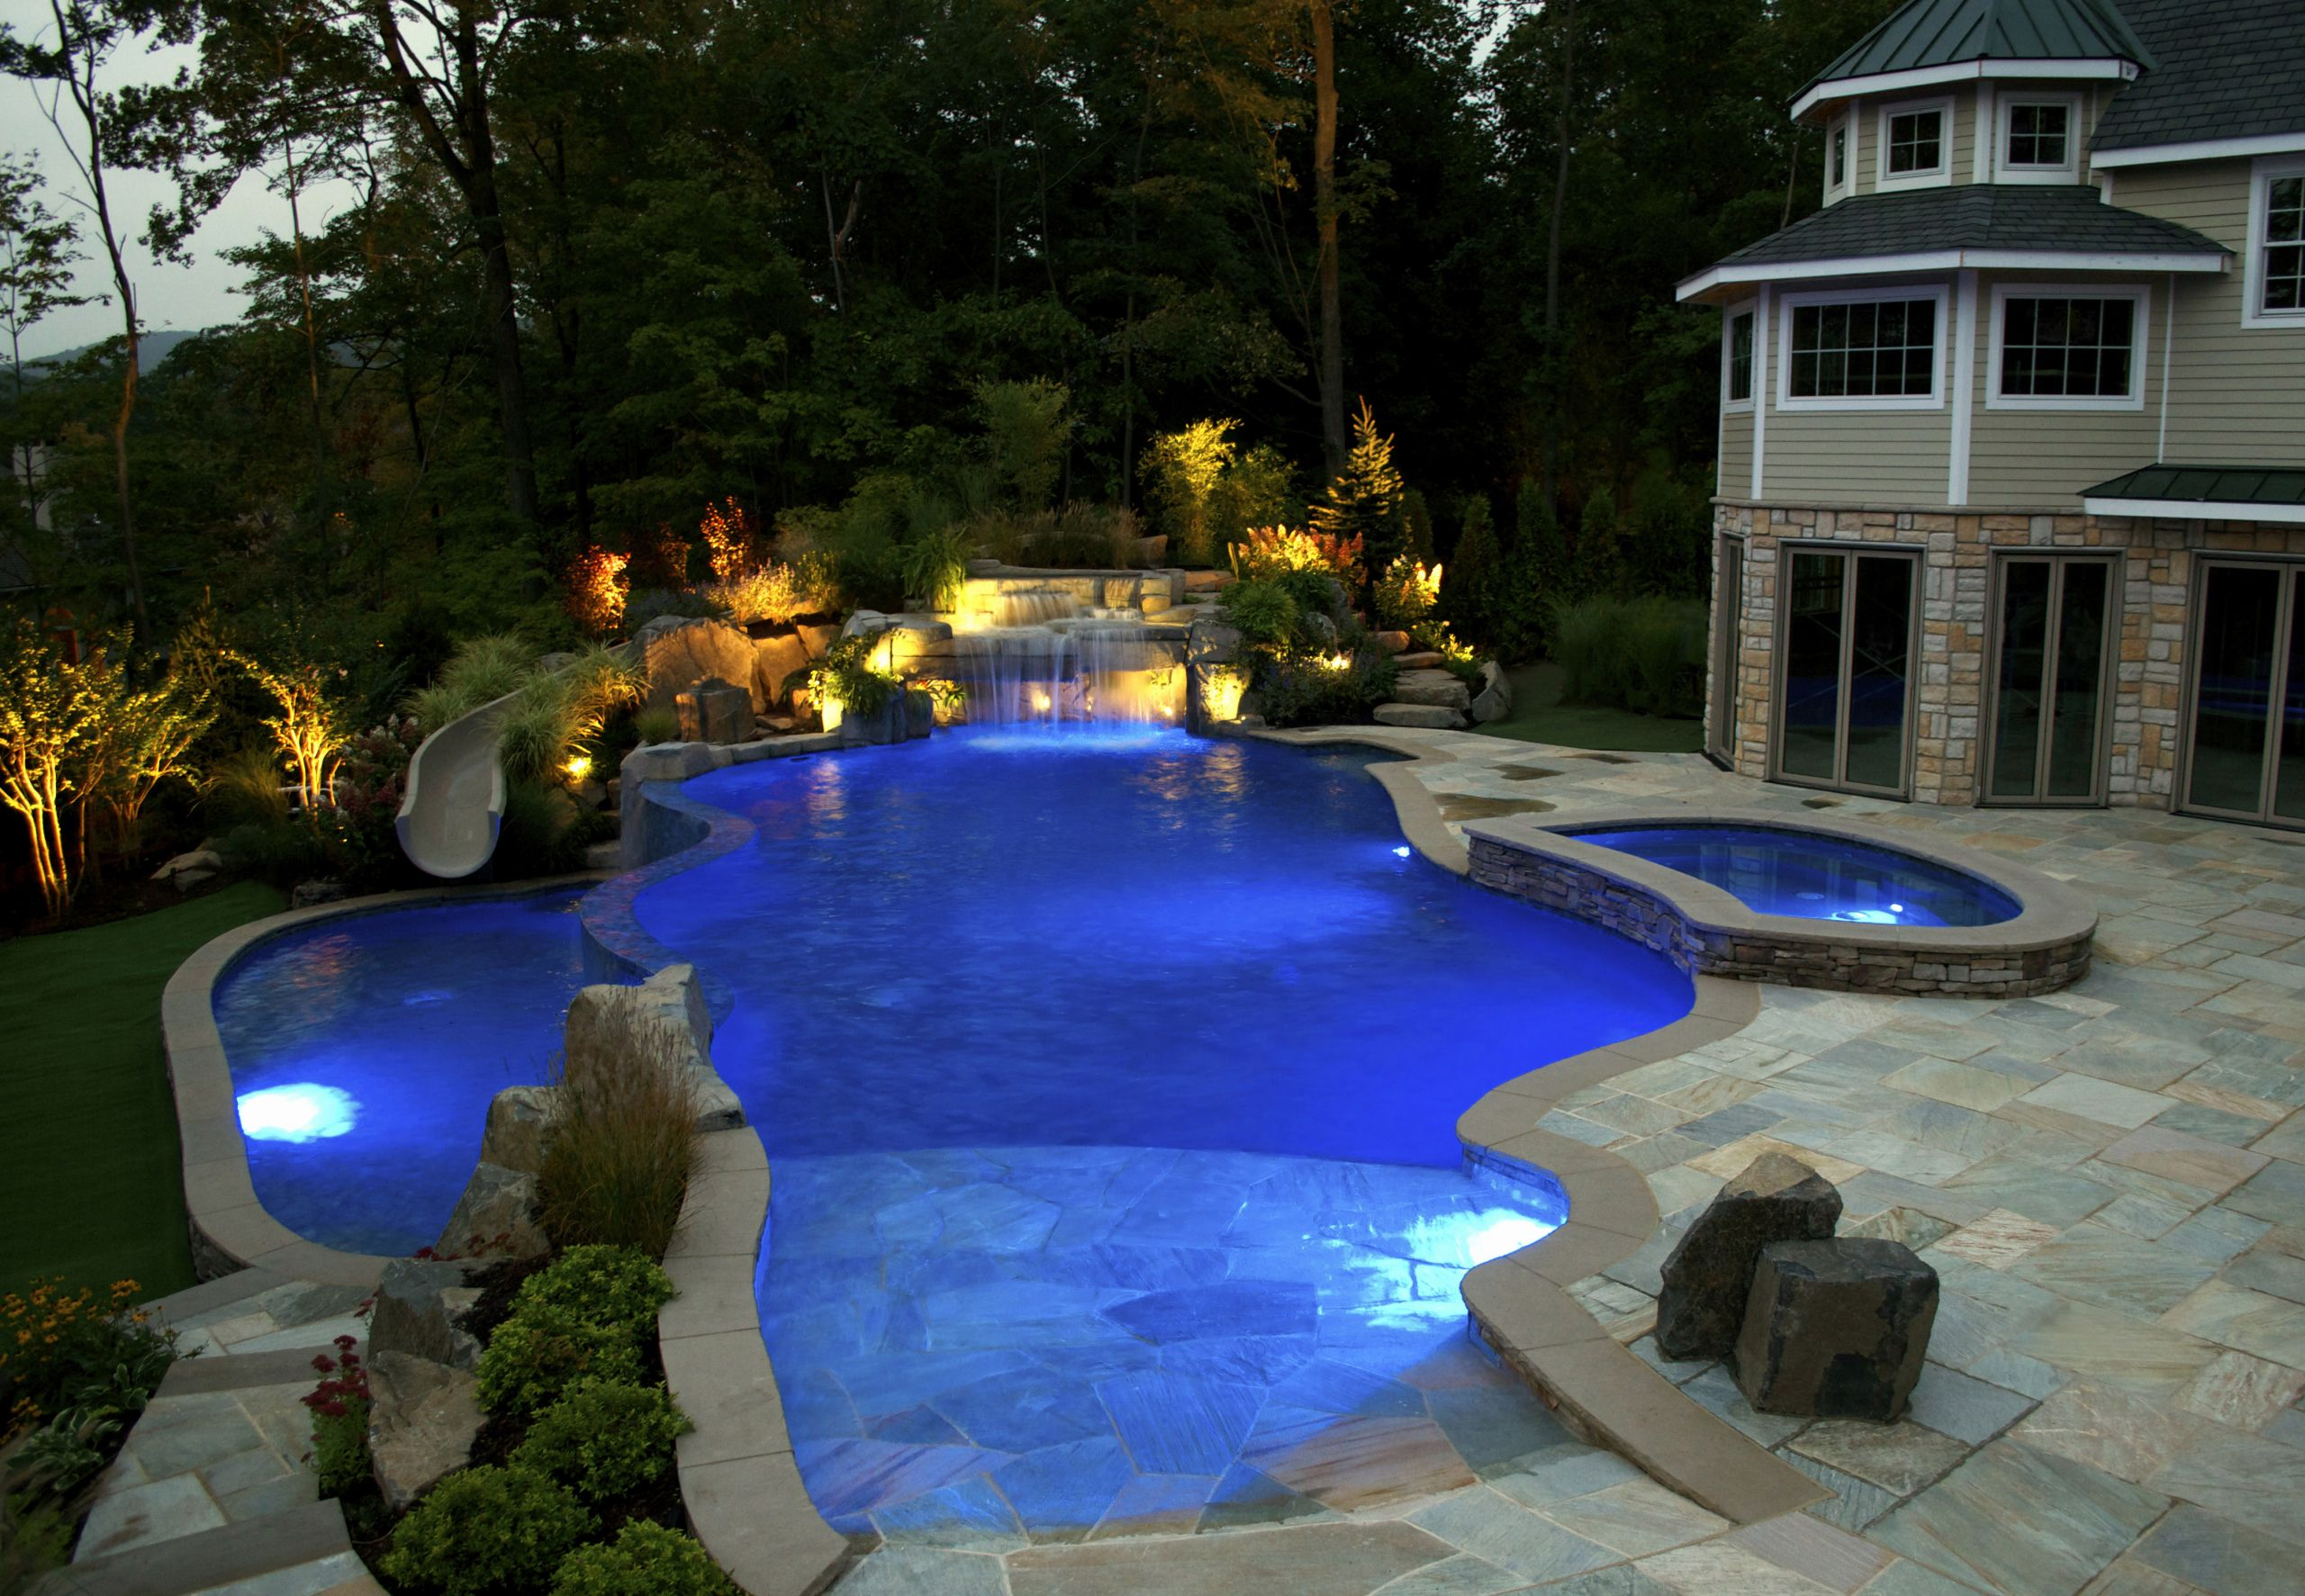 Pool Images Backyard  NJ Pool pany Debuts New Pool Features for Luxury